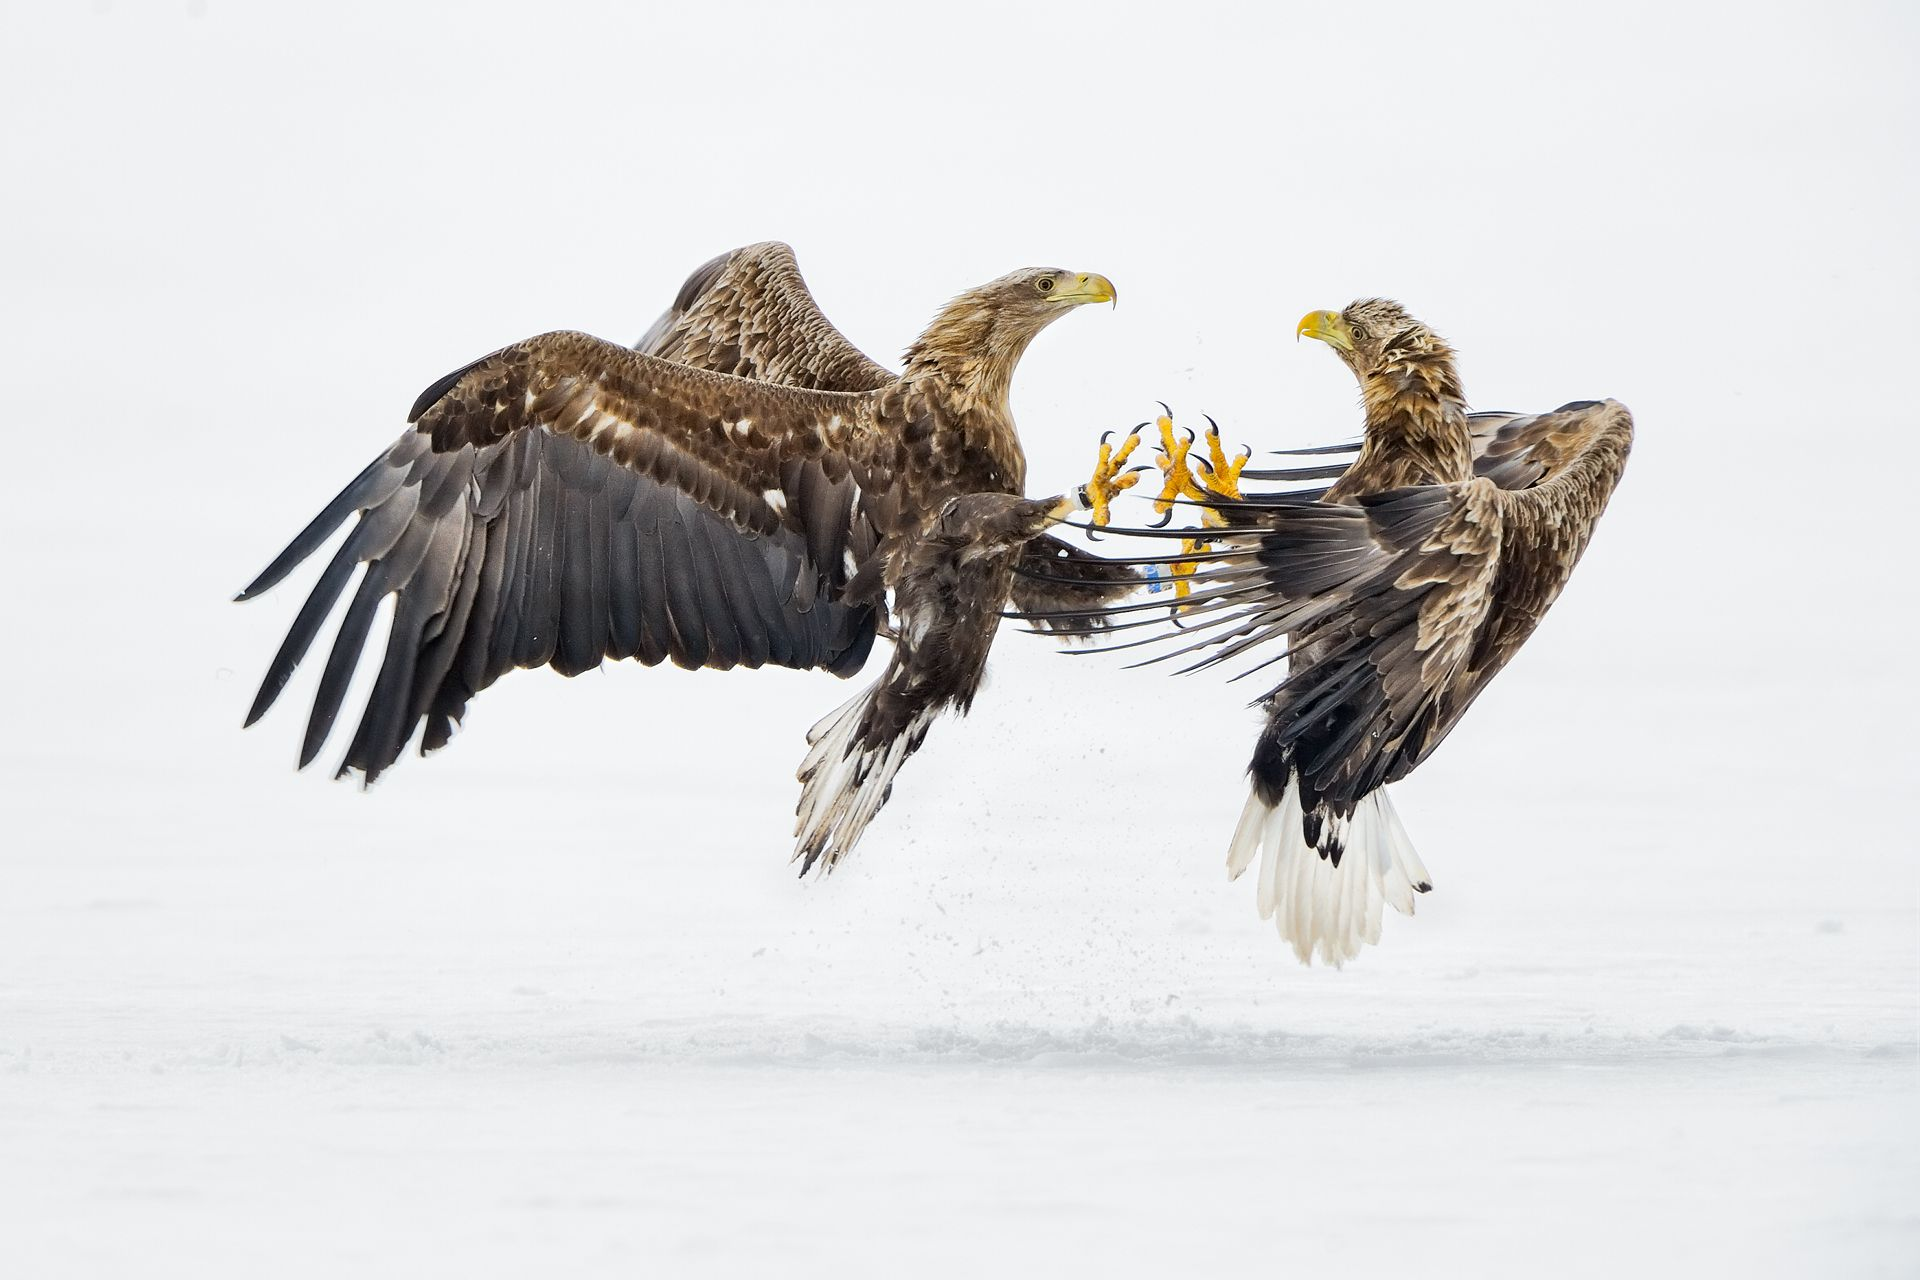 Eagles fight